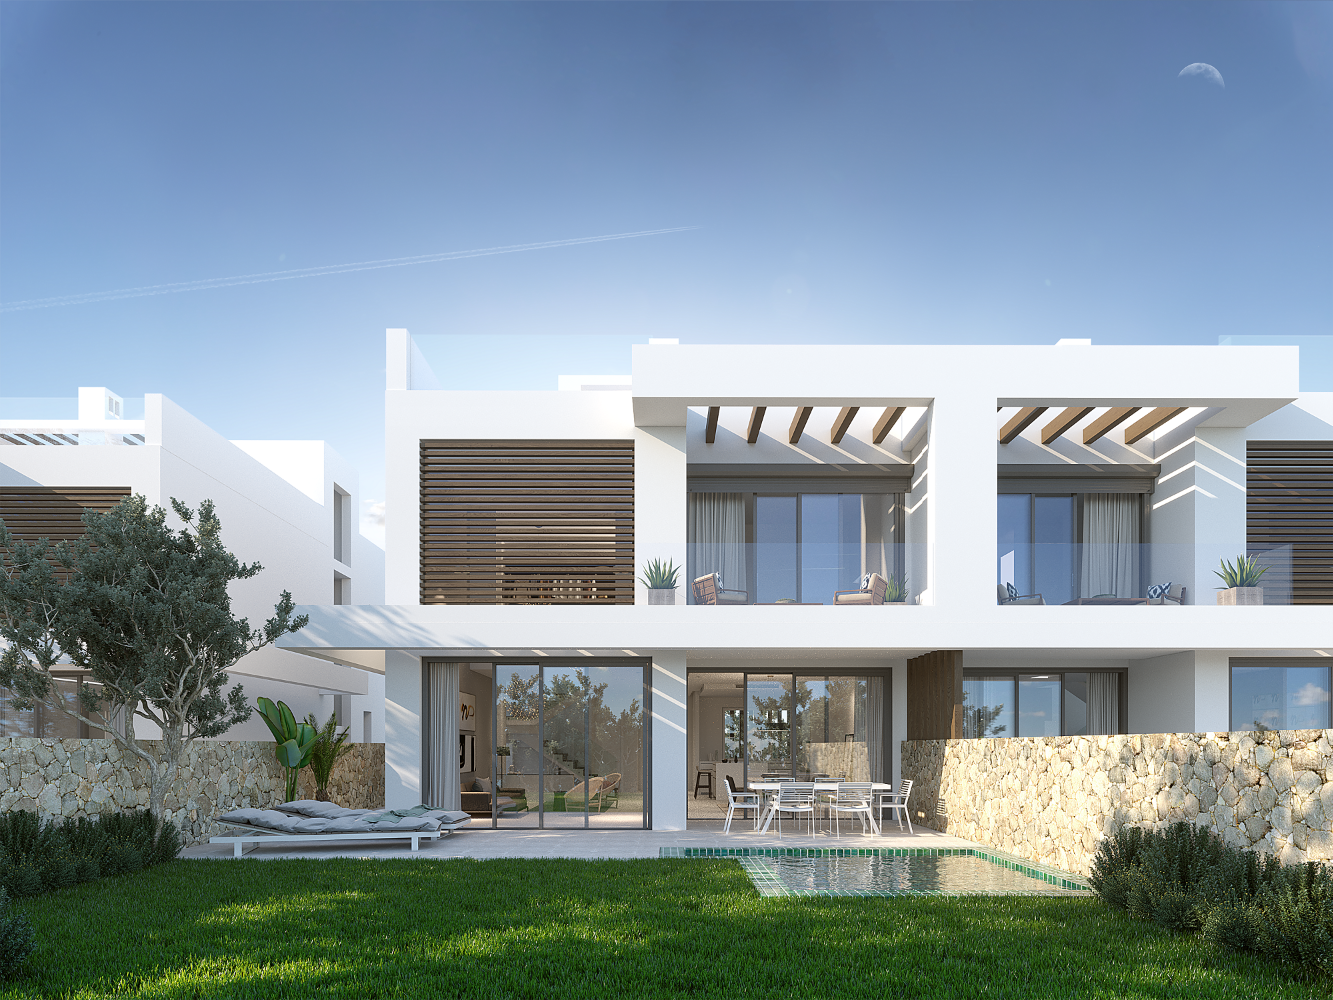 JUST 2 VILLAS REMAINING IN THIS BOUTIQUE DEVELOPMENT OF 6 VILLAS IN MARBELLA, CABOPINO